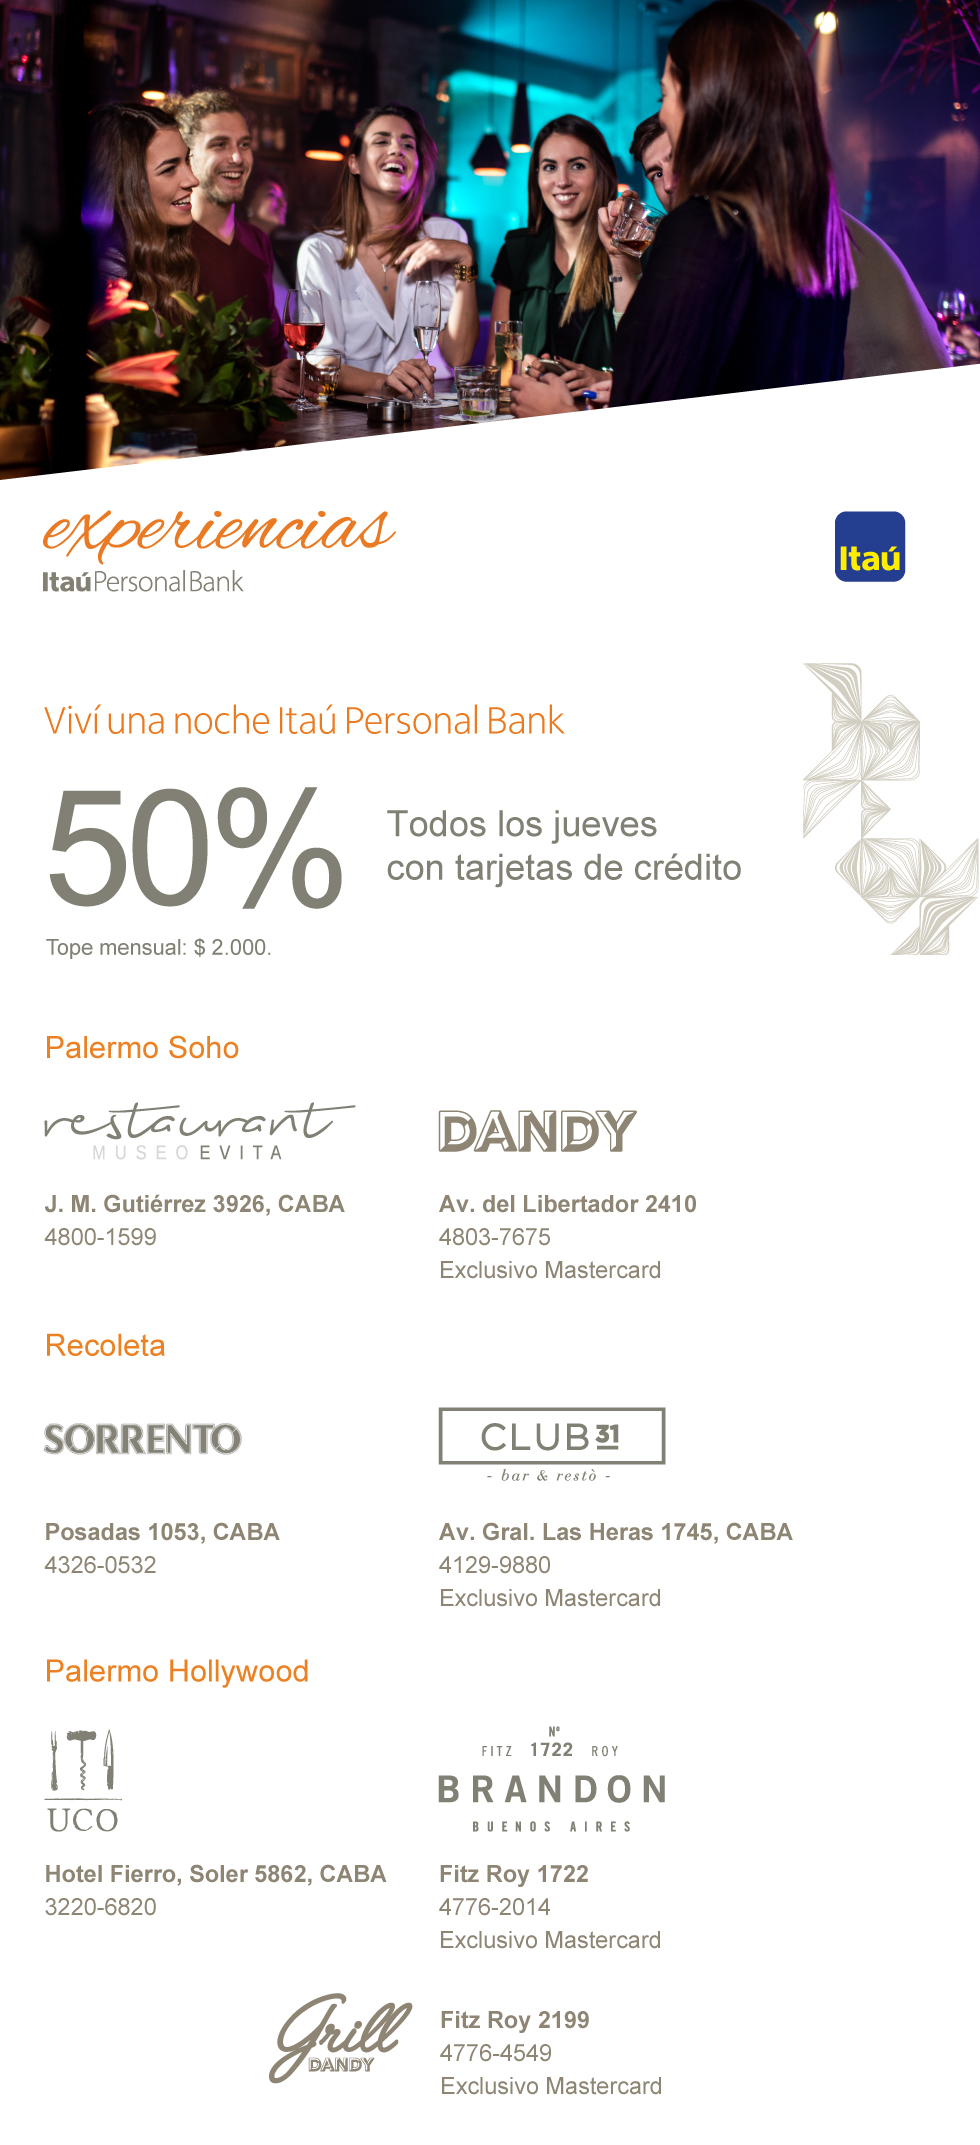 exclusividad-itau-personal-bank